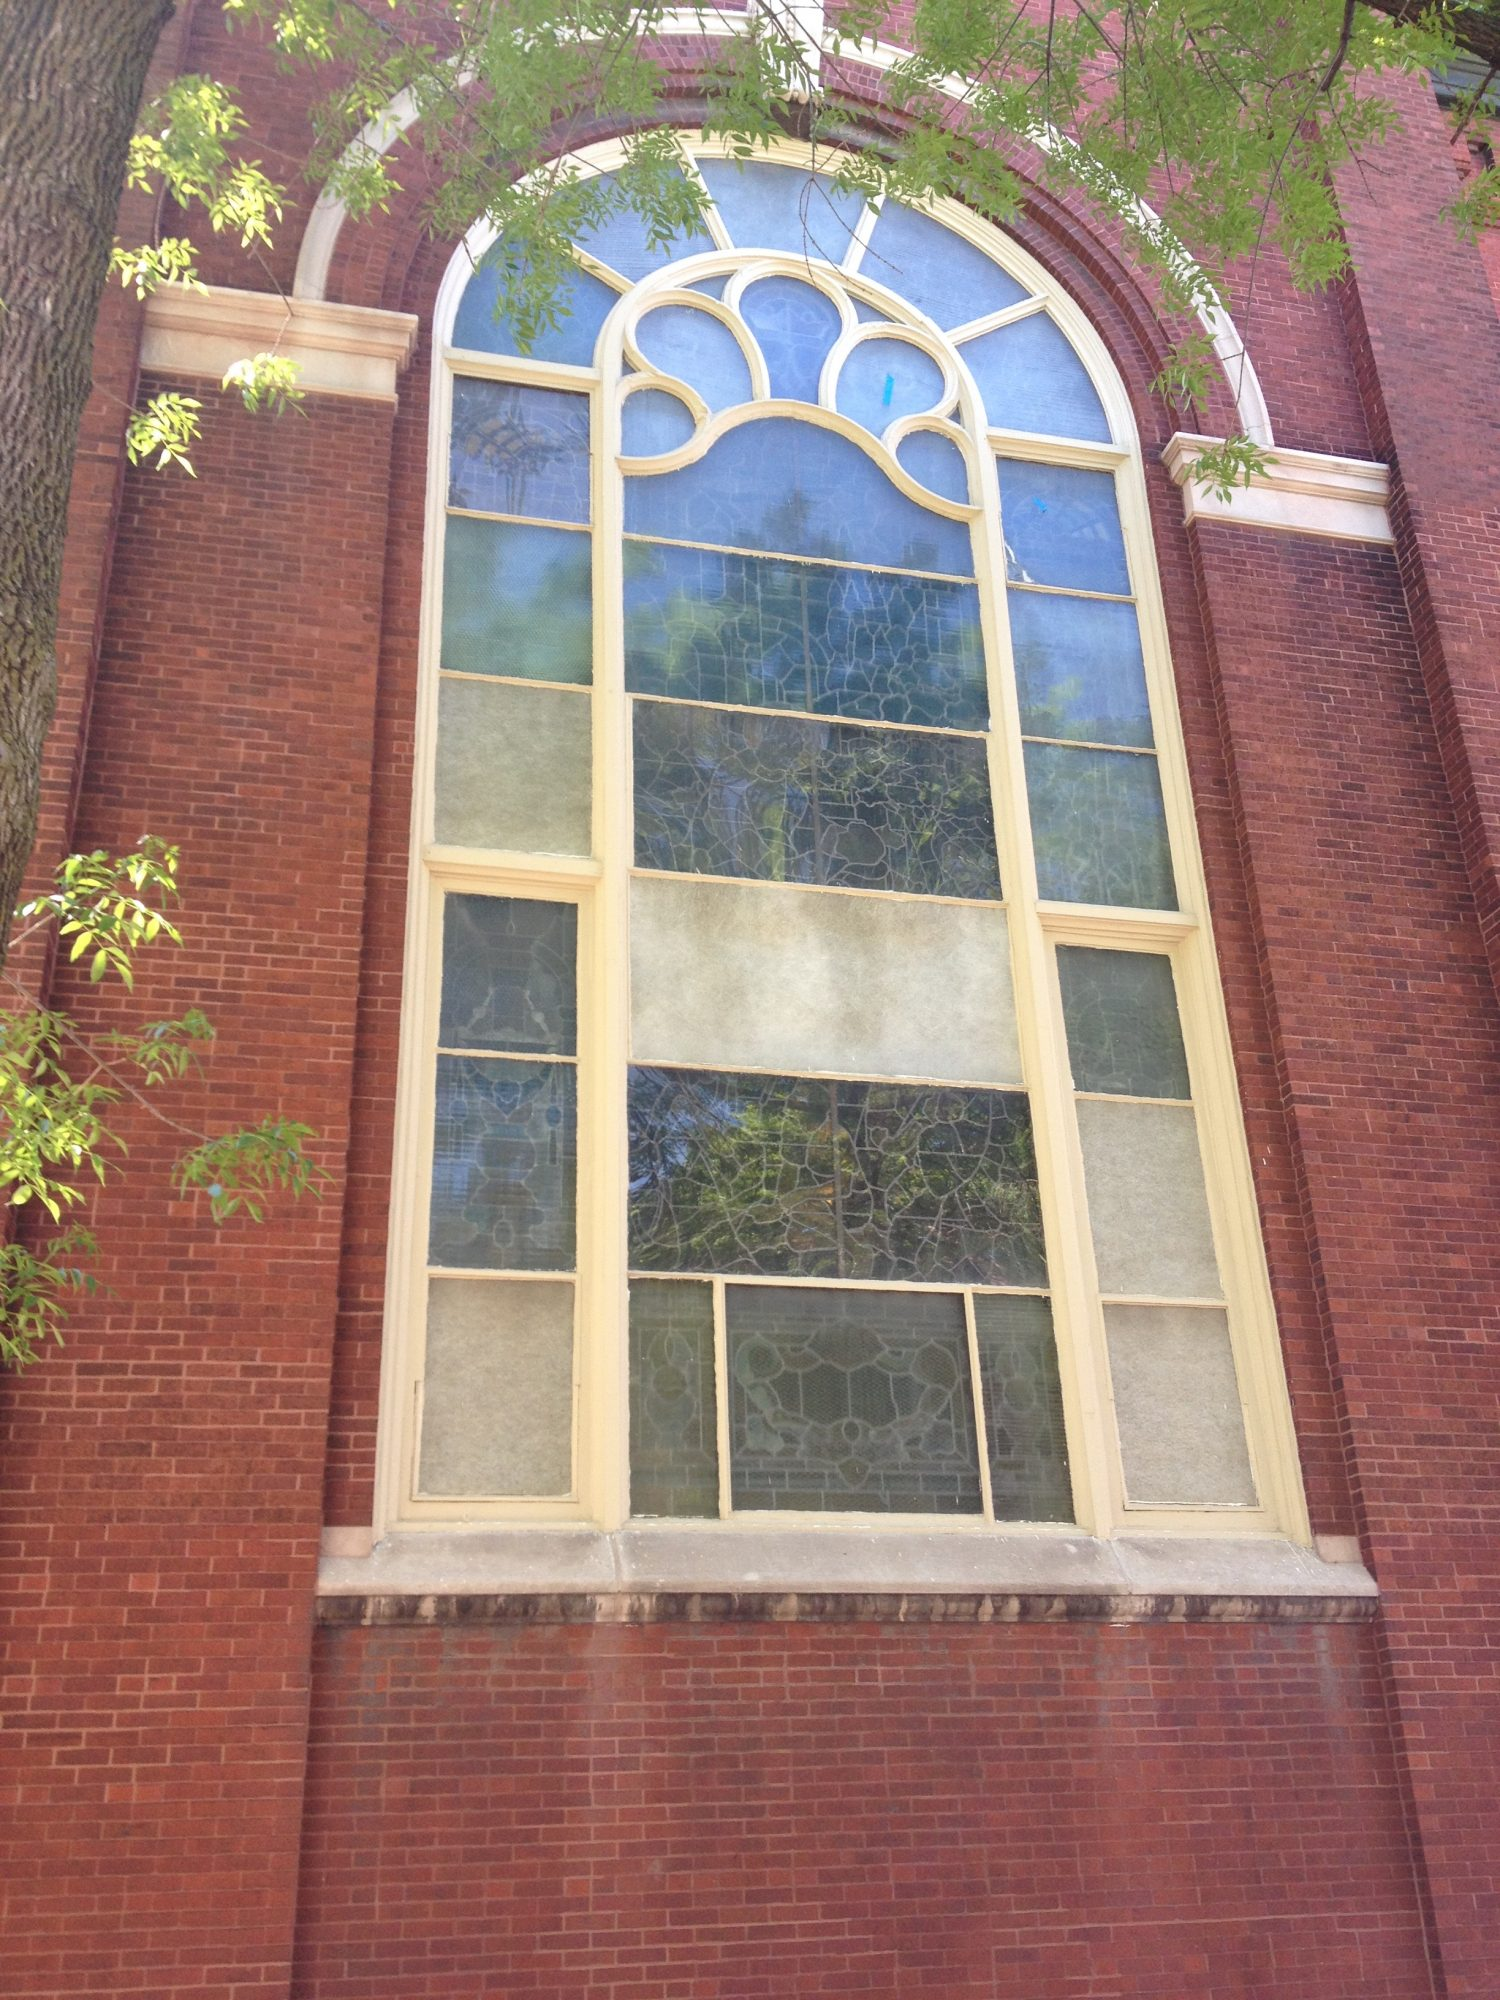 Windows Replacement Our Lady of Tepeyac, Chicago